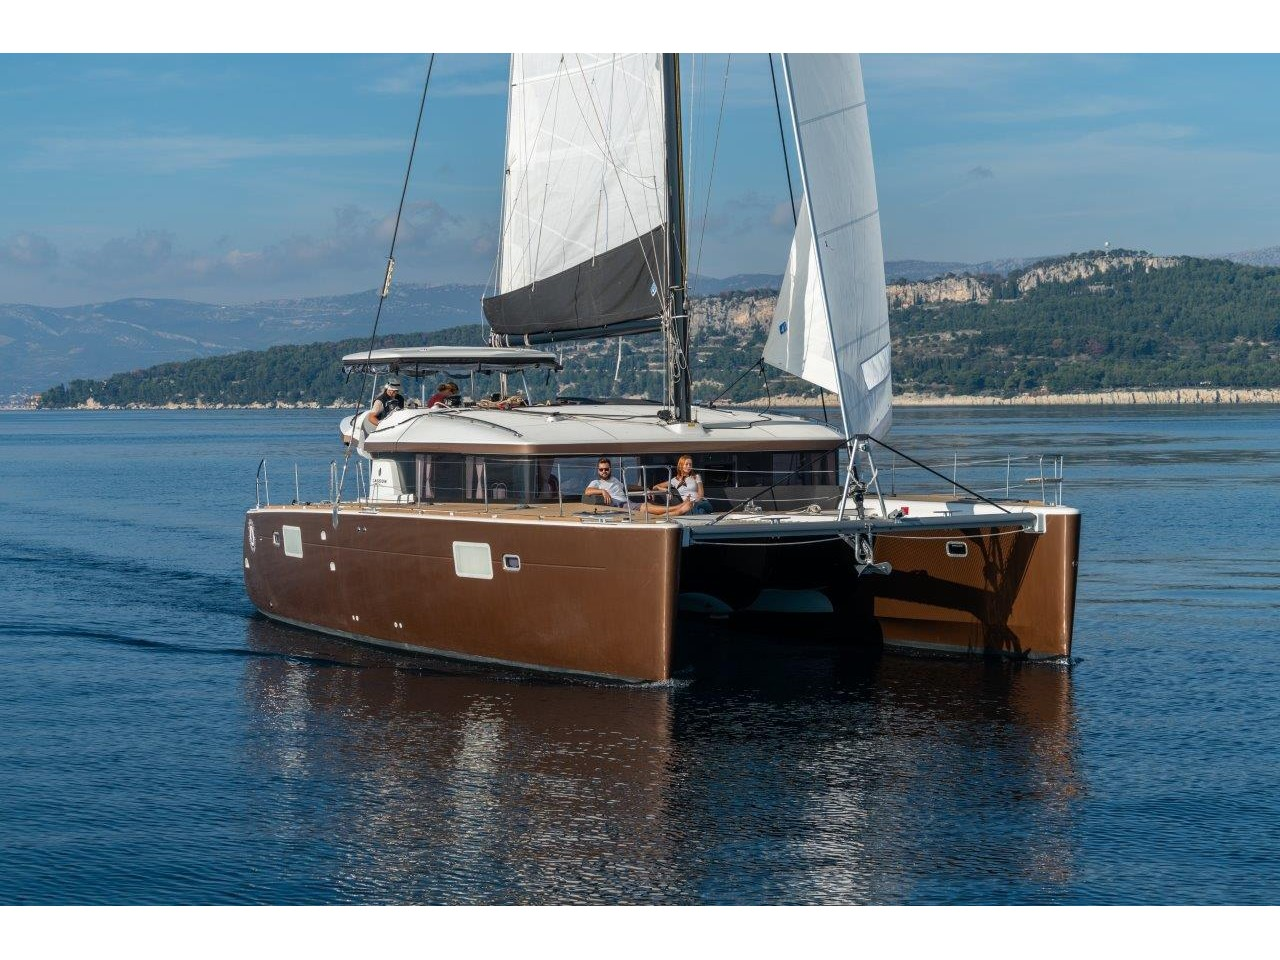 Lagoon 450 Sport LUX equipped with generator, A/C (PRINCESS SOFIA) Main image - 0